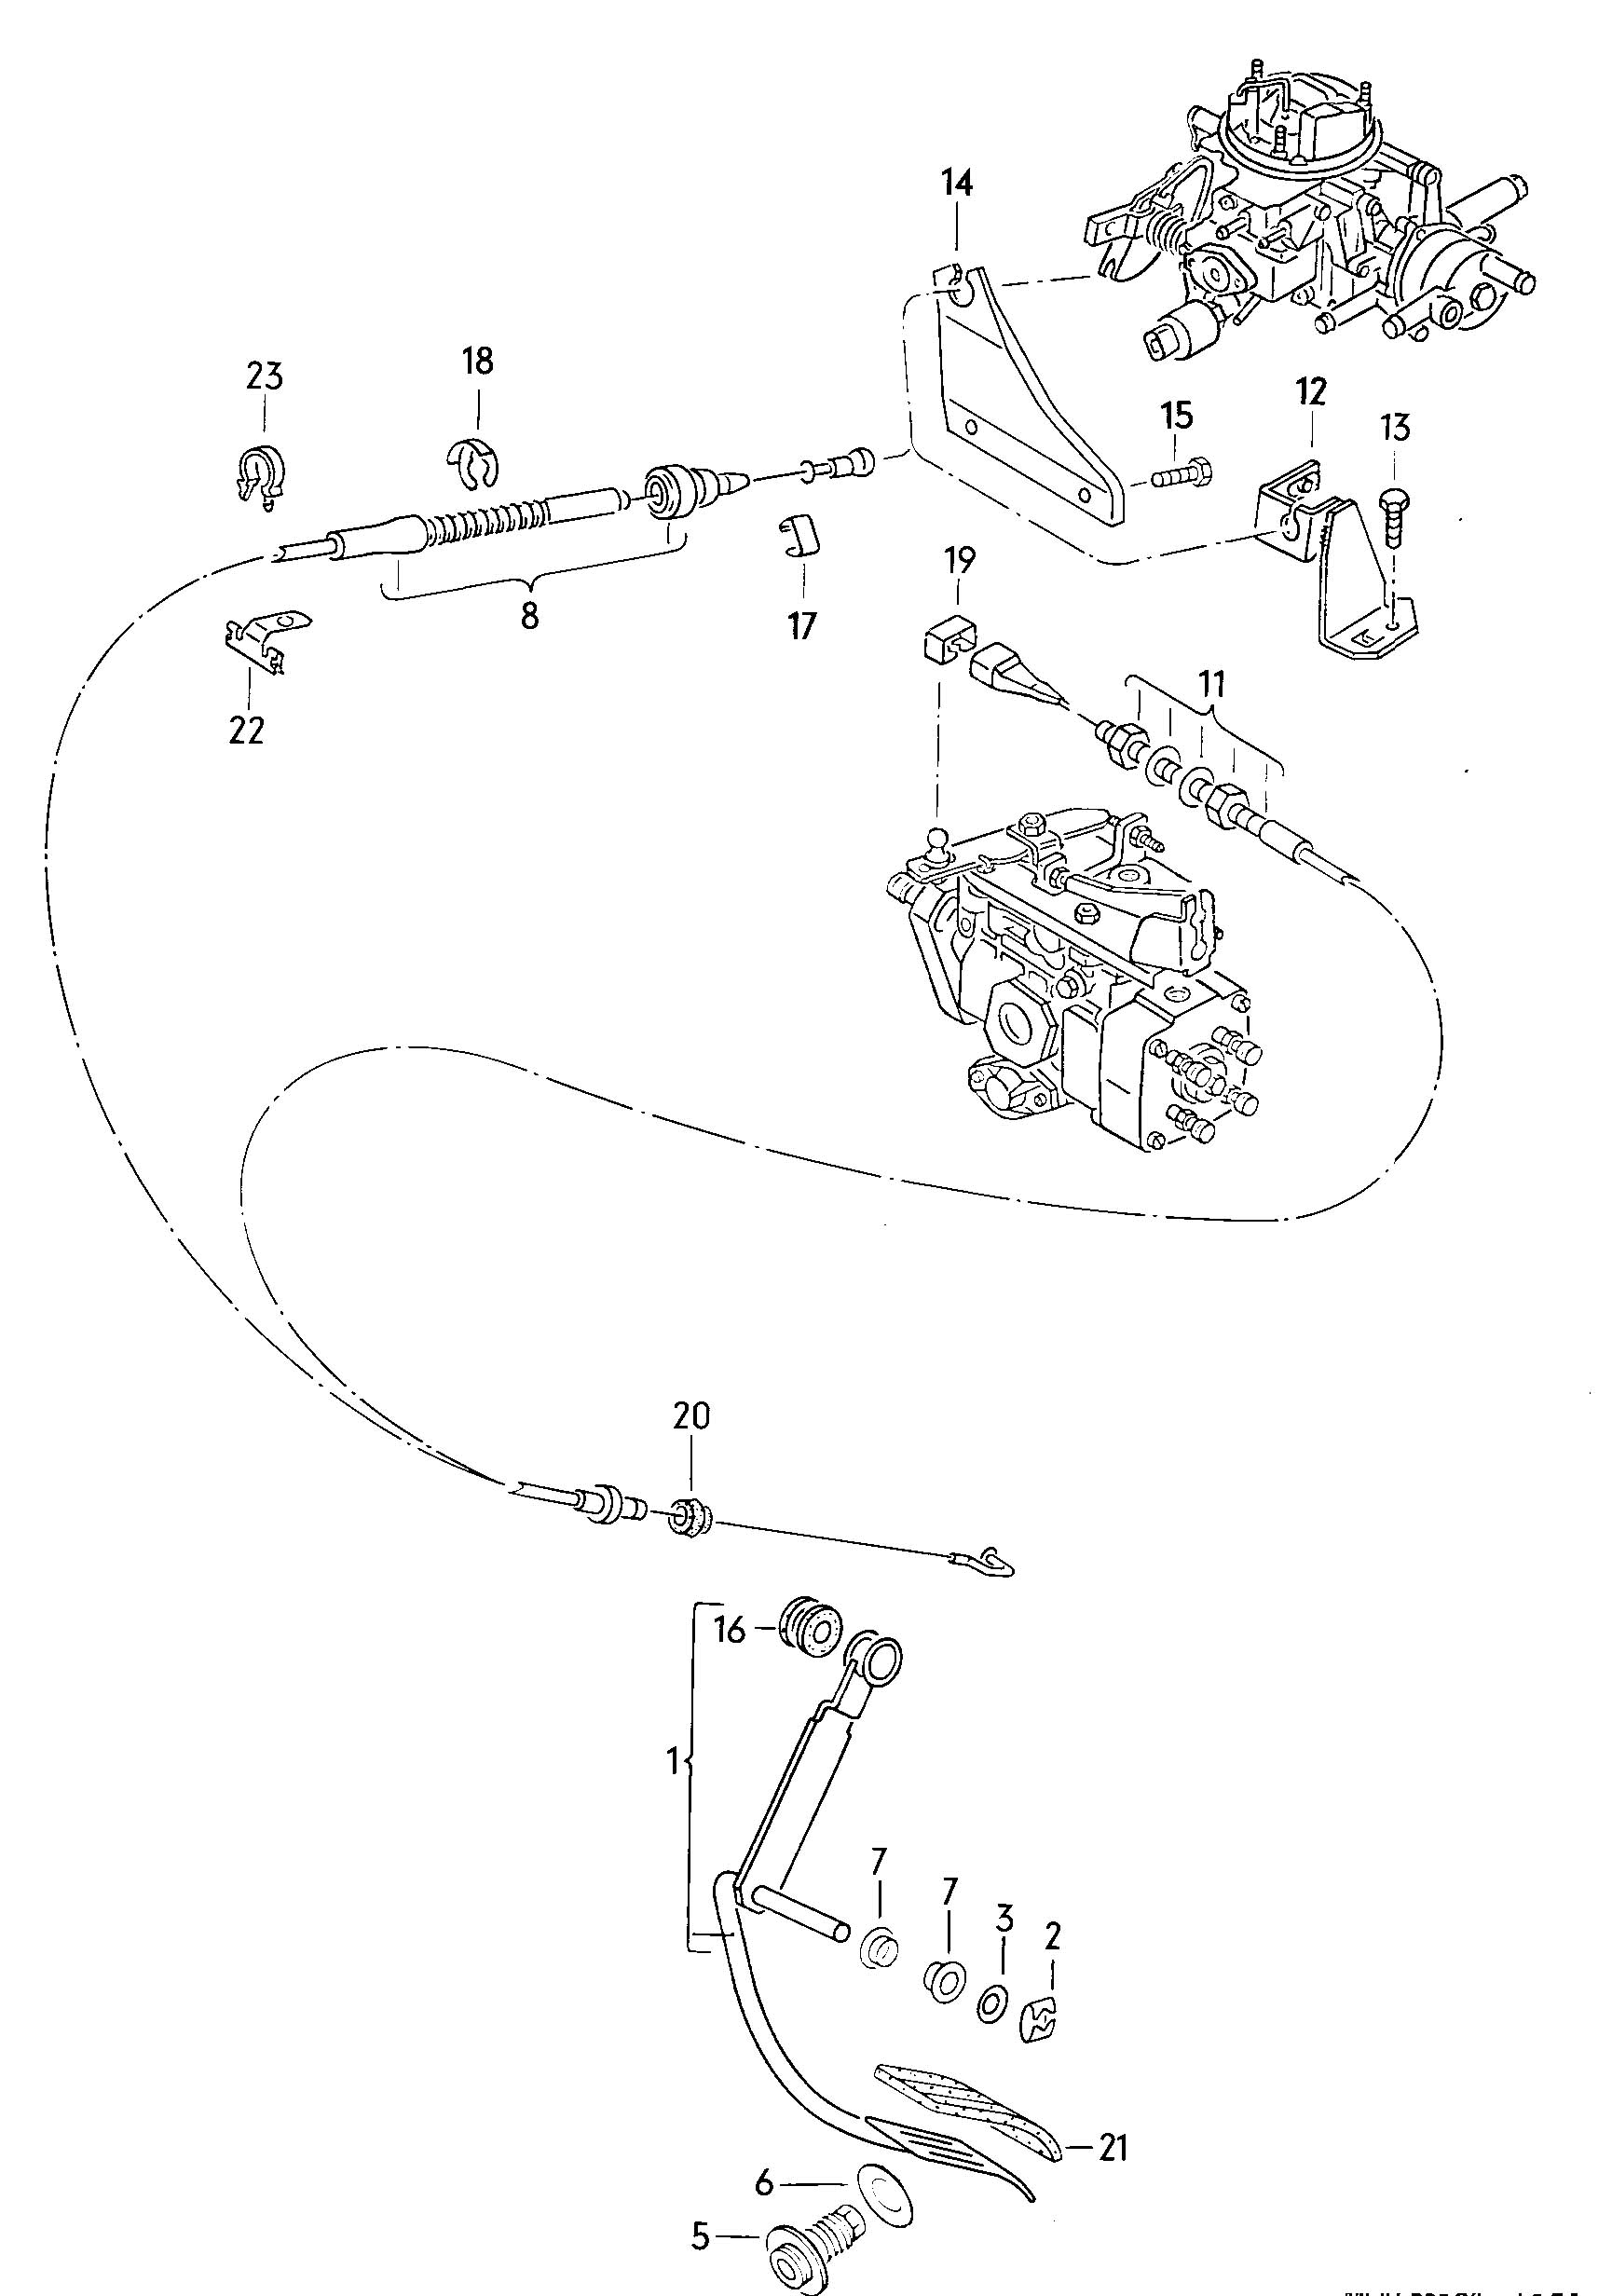 Service manual [2003 Chevrolet Tracker Timing Chain